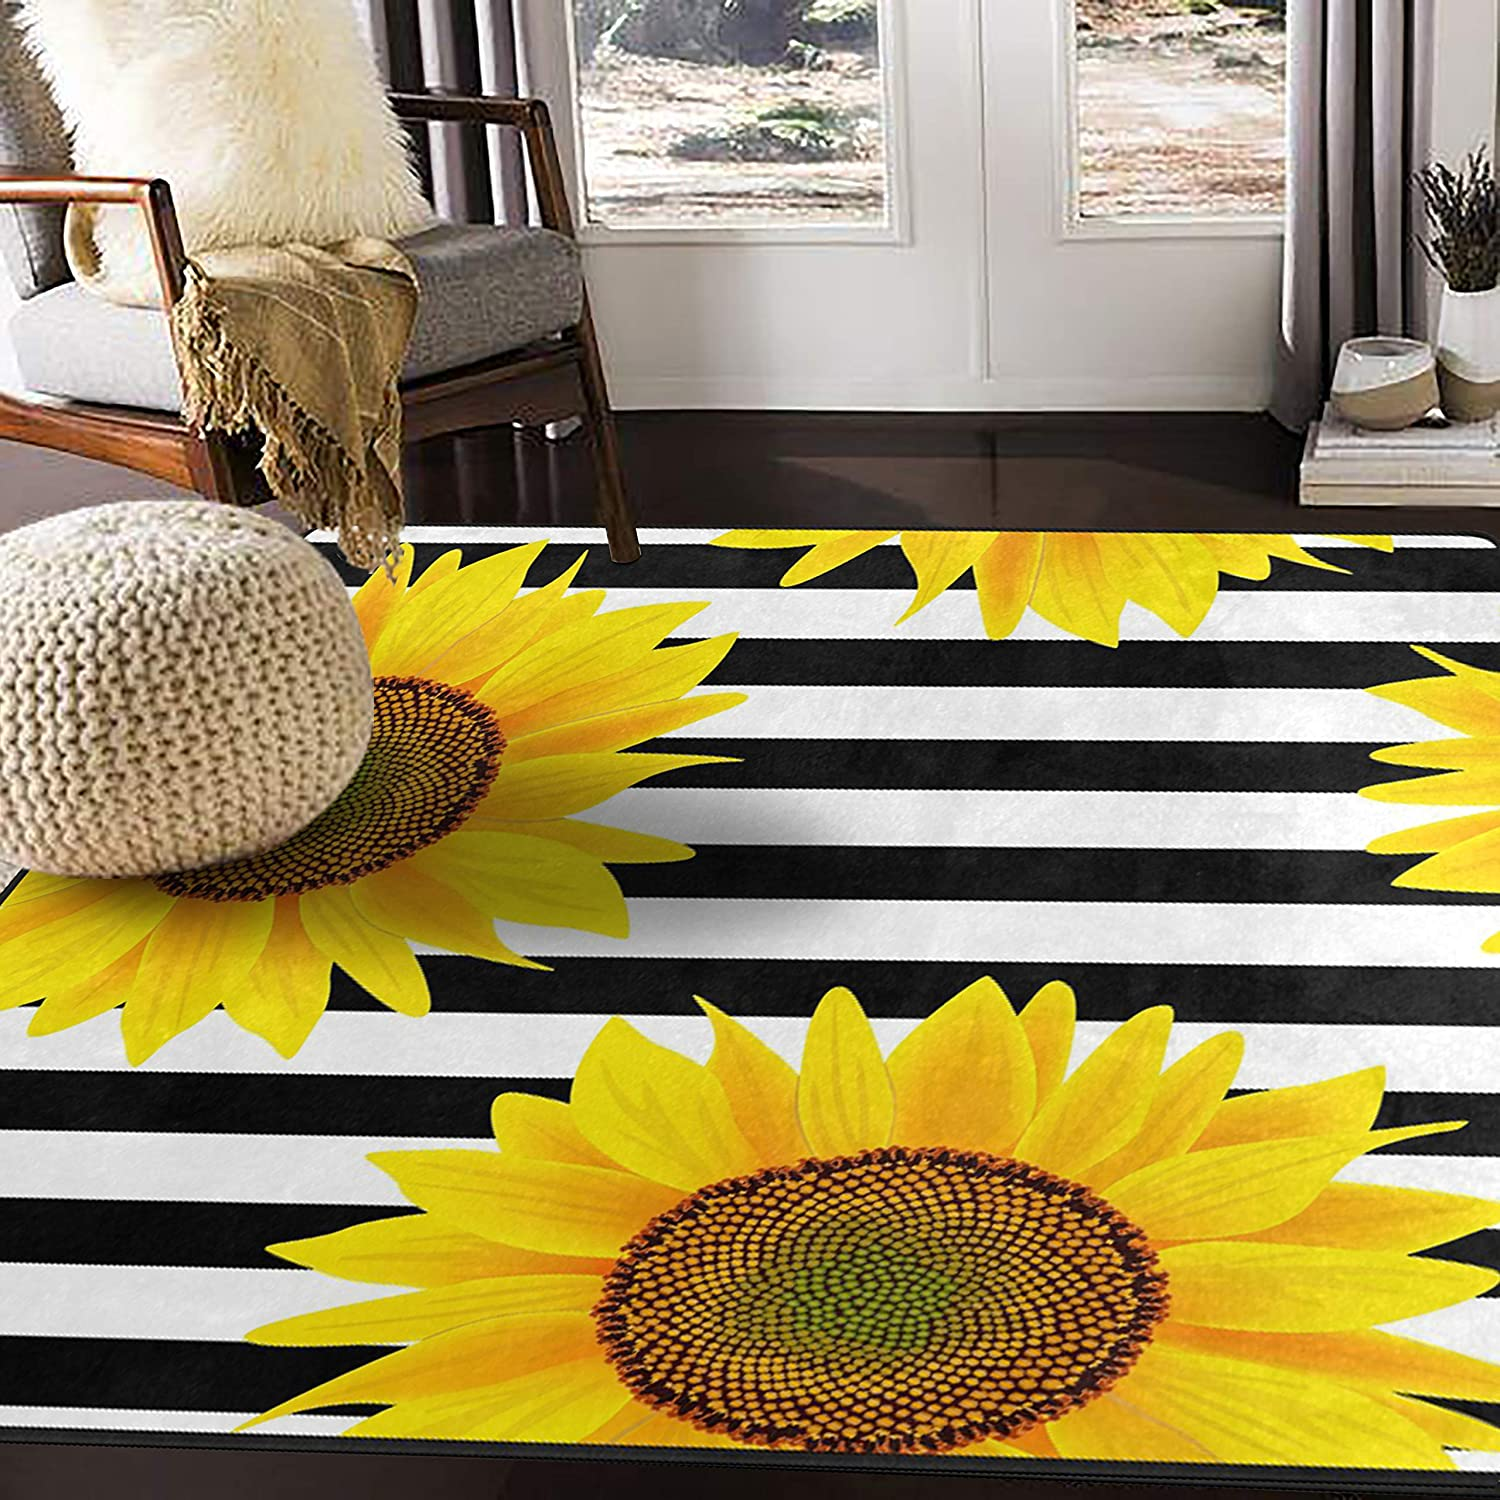 Amazon Com Alaza Black White Striped Sunflower Area Rug Rugs For Living Room Bedroom 5 3 X4 Kitchen Dining